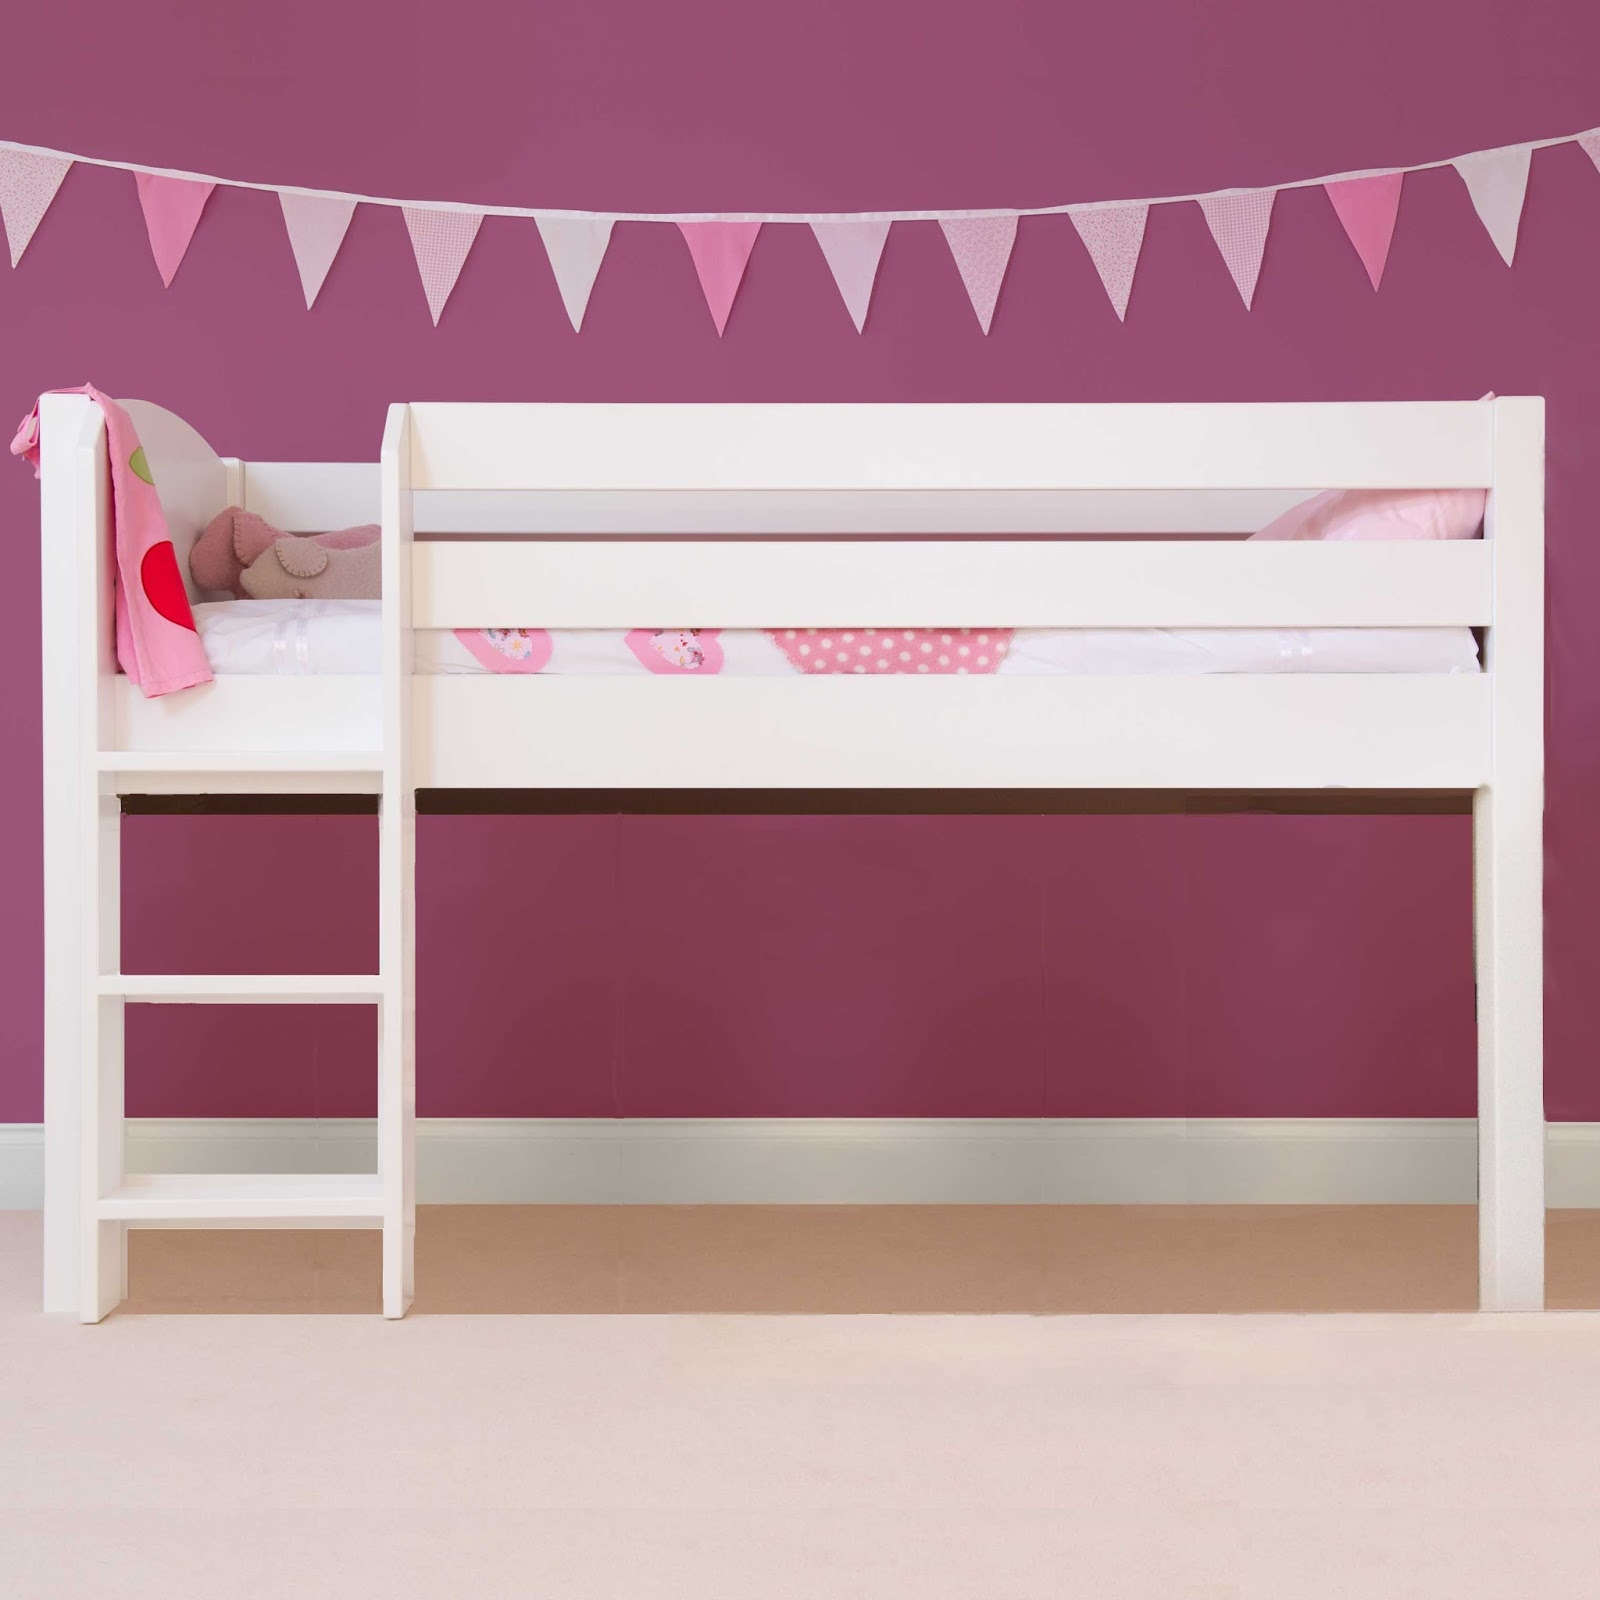 White 6 Cube Kids Toy Games Storage Unit Girls Boys: How To Create A Loft Style Kids Bed The Easy Way With